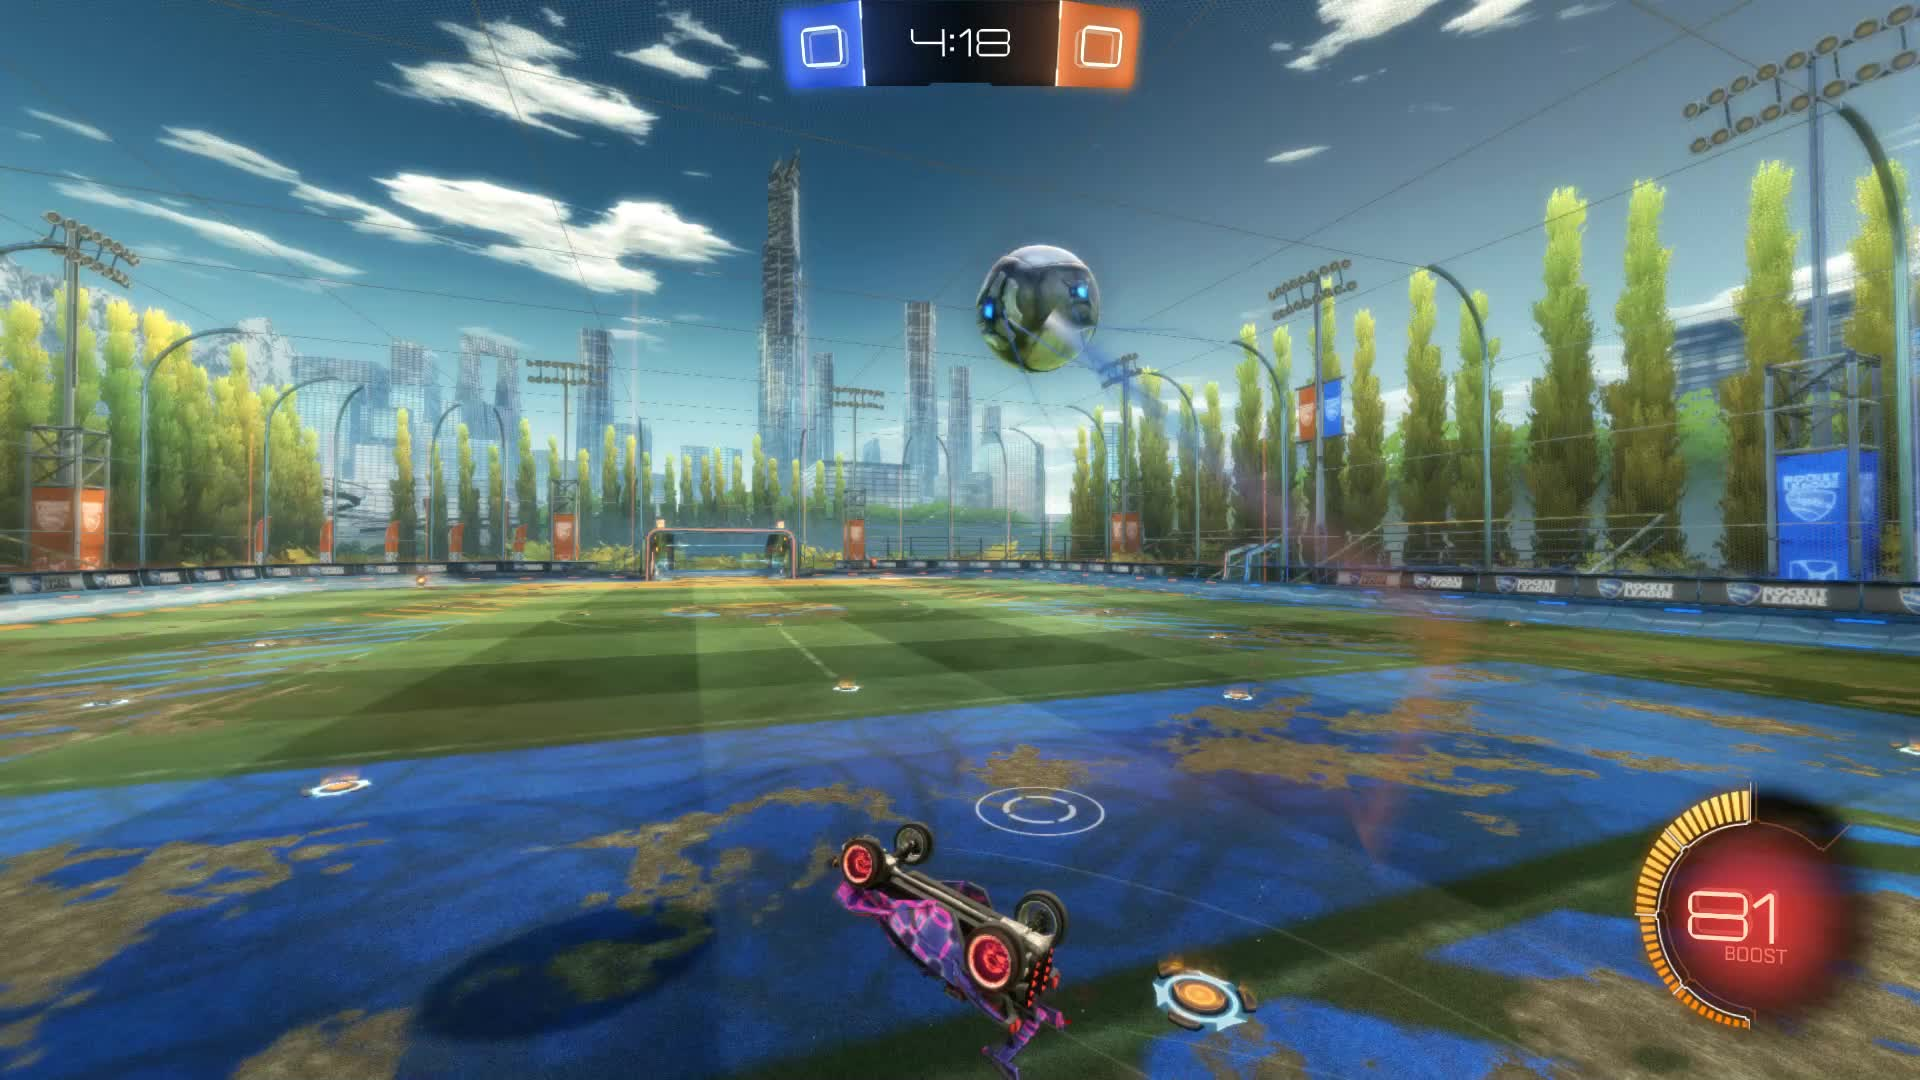 Gif Your Game, GifYourGame, Goal, Rocket League, RocketLeague, Snakes, Goal 1: Snakes GIFs